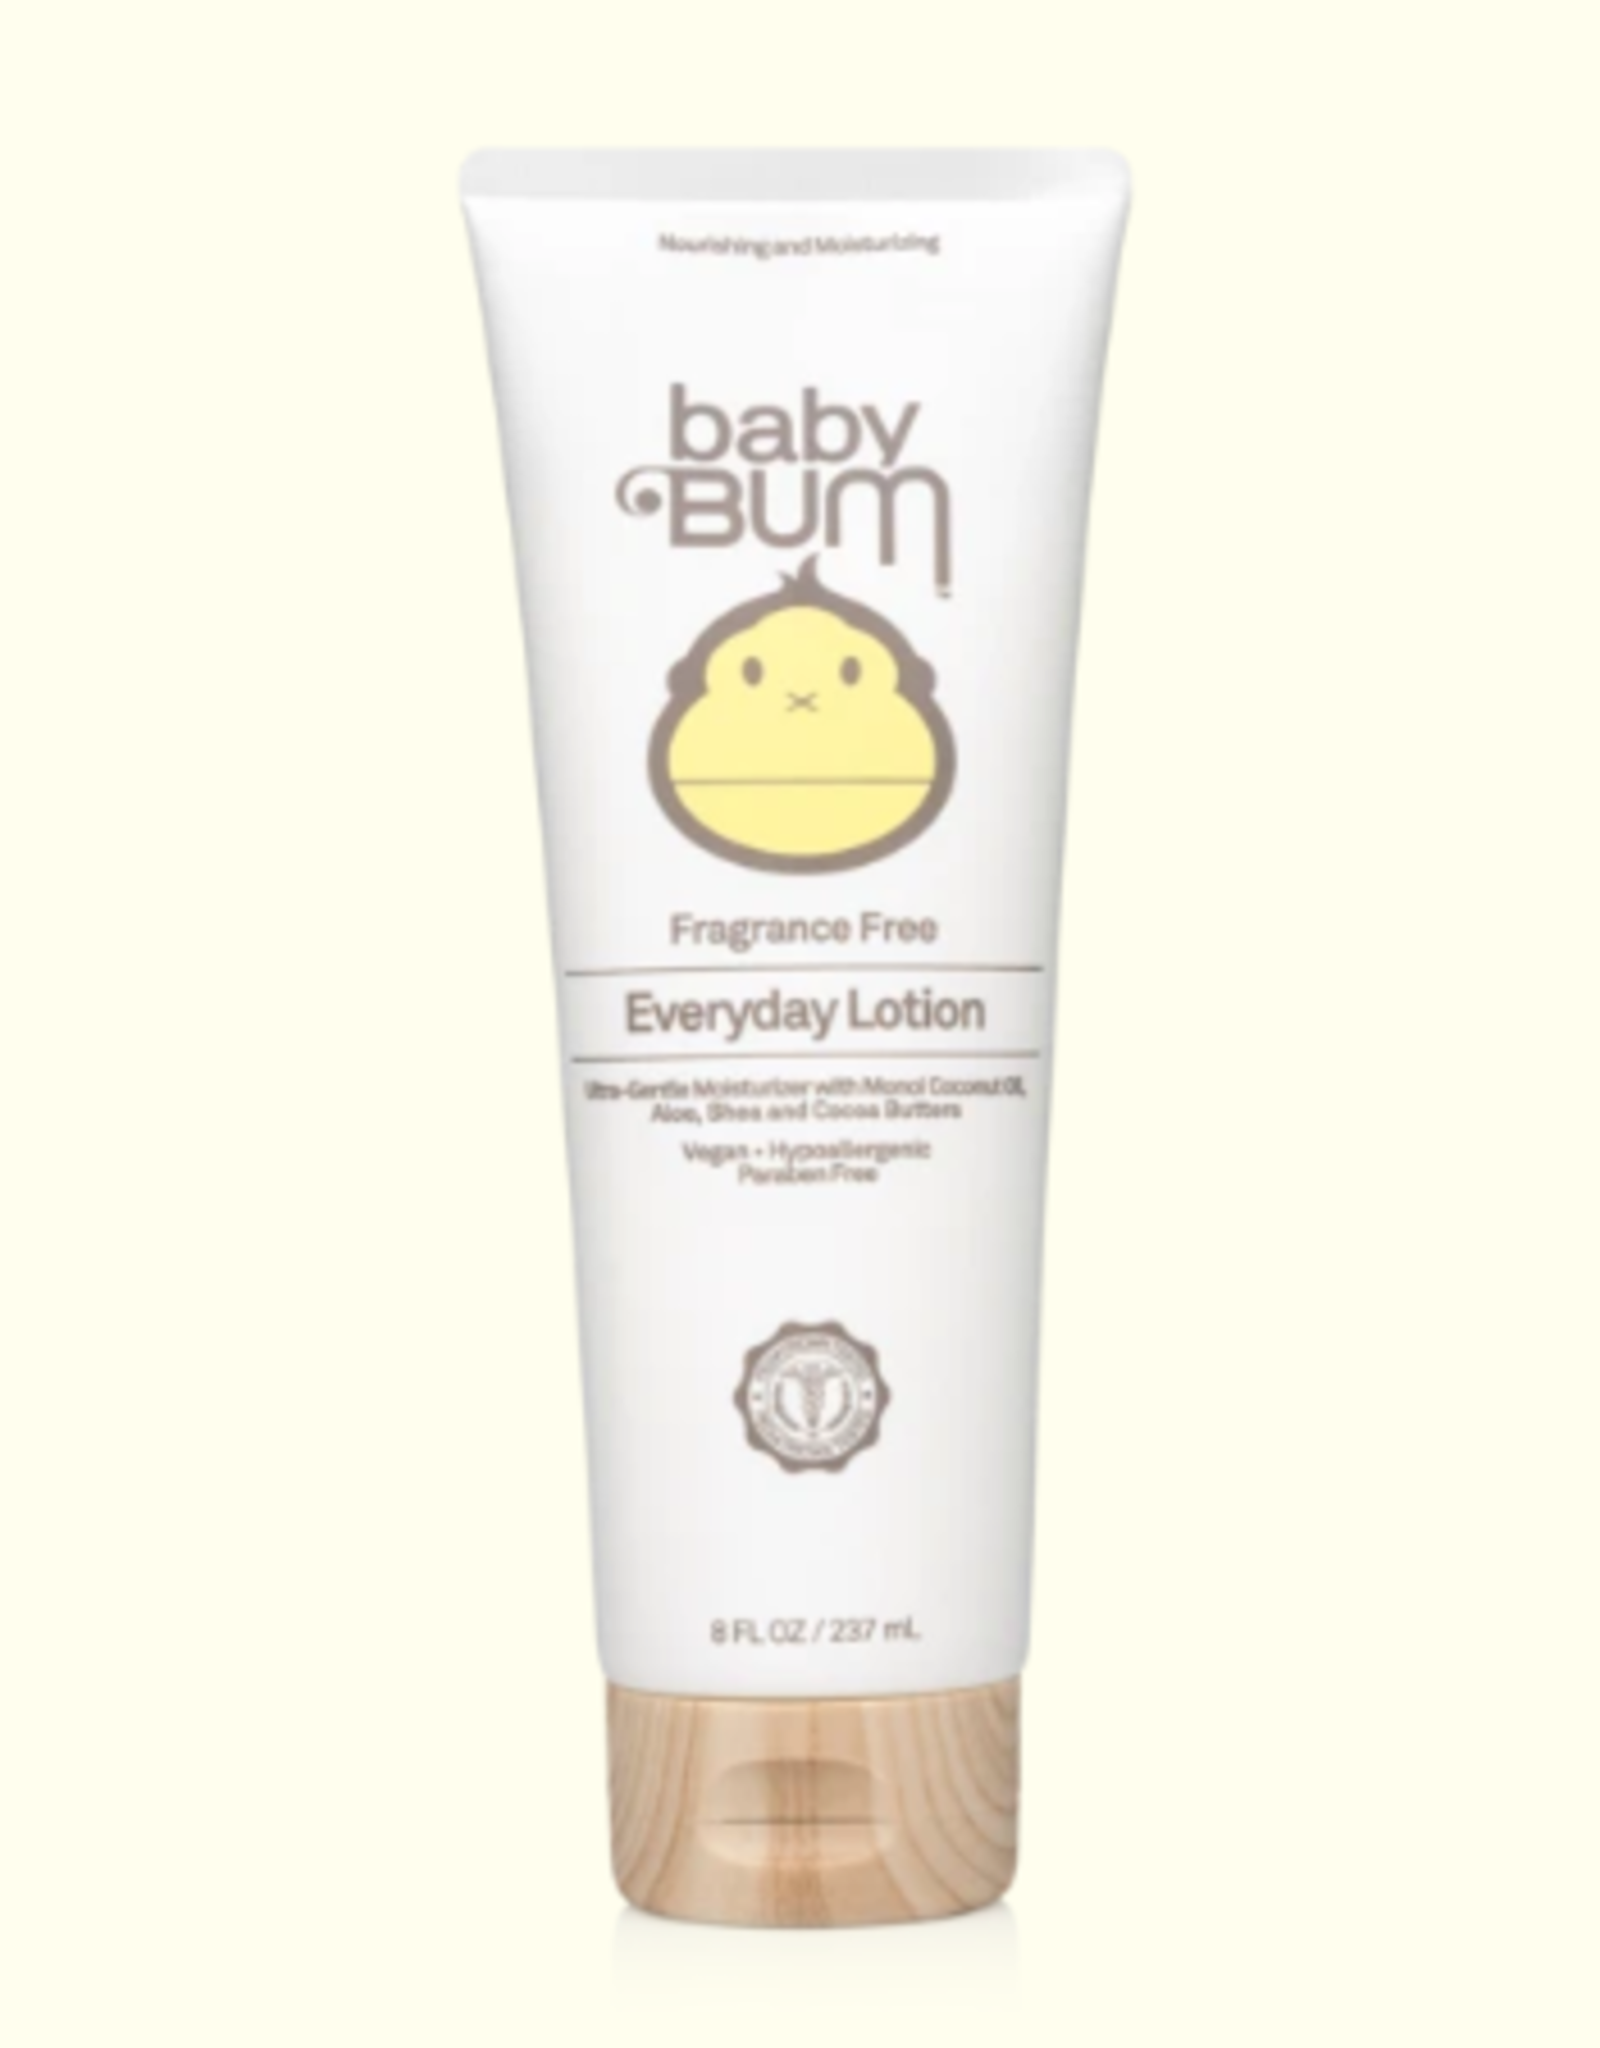 SUN BUM BABY BUM EVERYDAY LOTION FRAGRANCE FREE